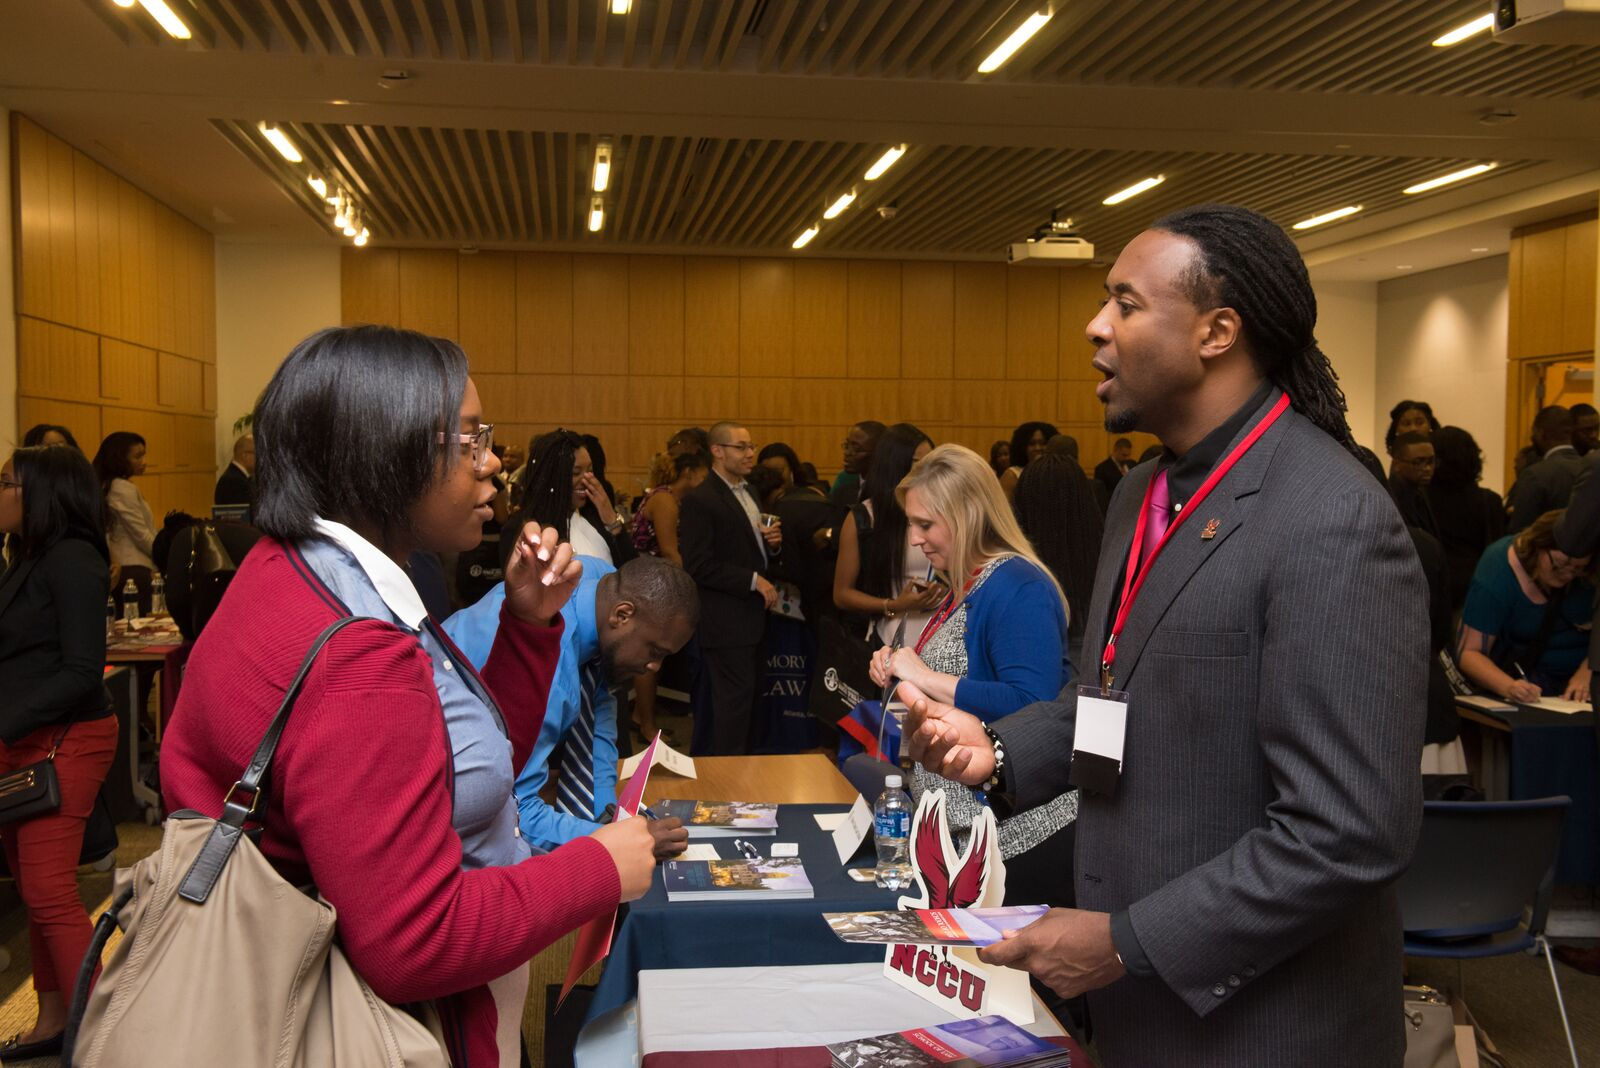 Law School and Resources Expo